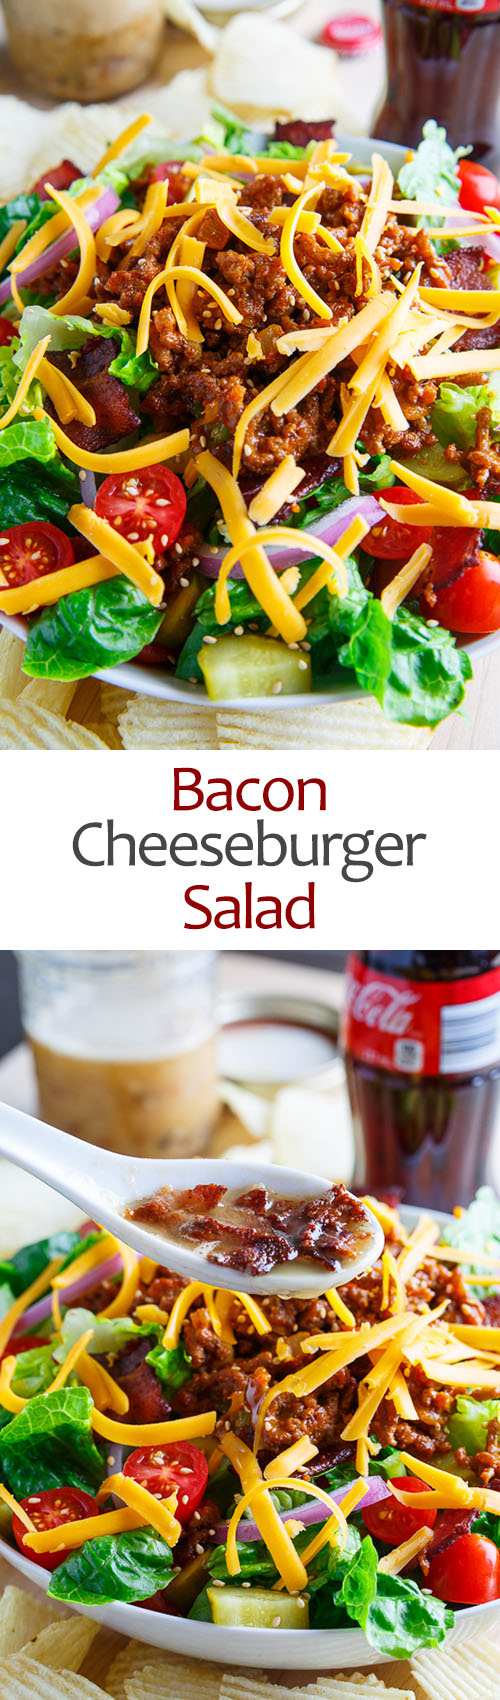 Bacon Cheeseburger Salad on Closet Cooking